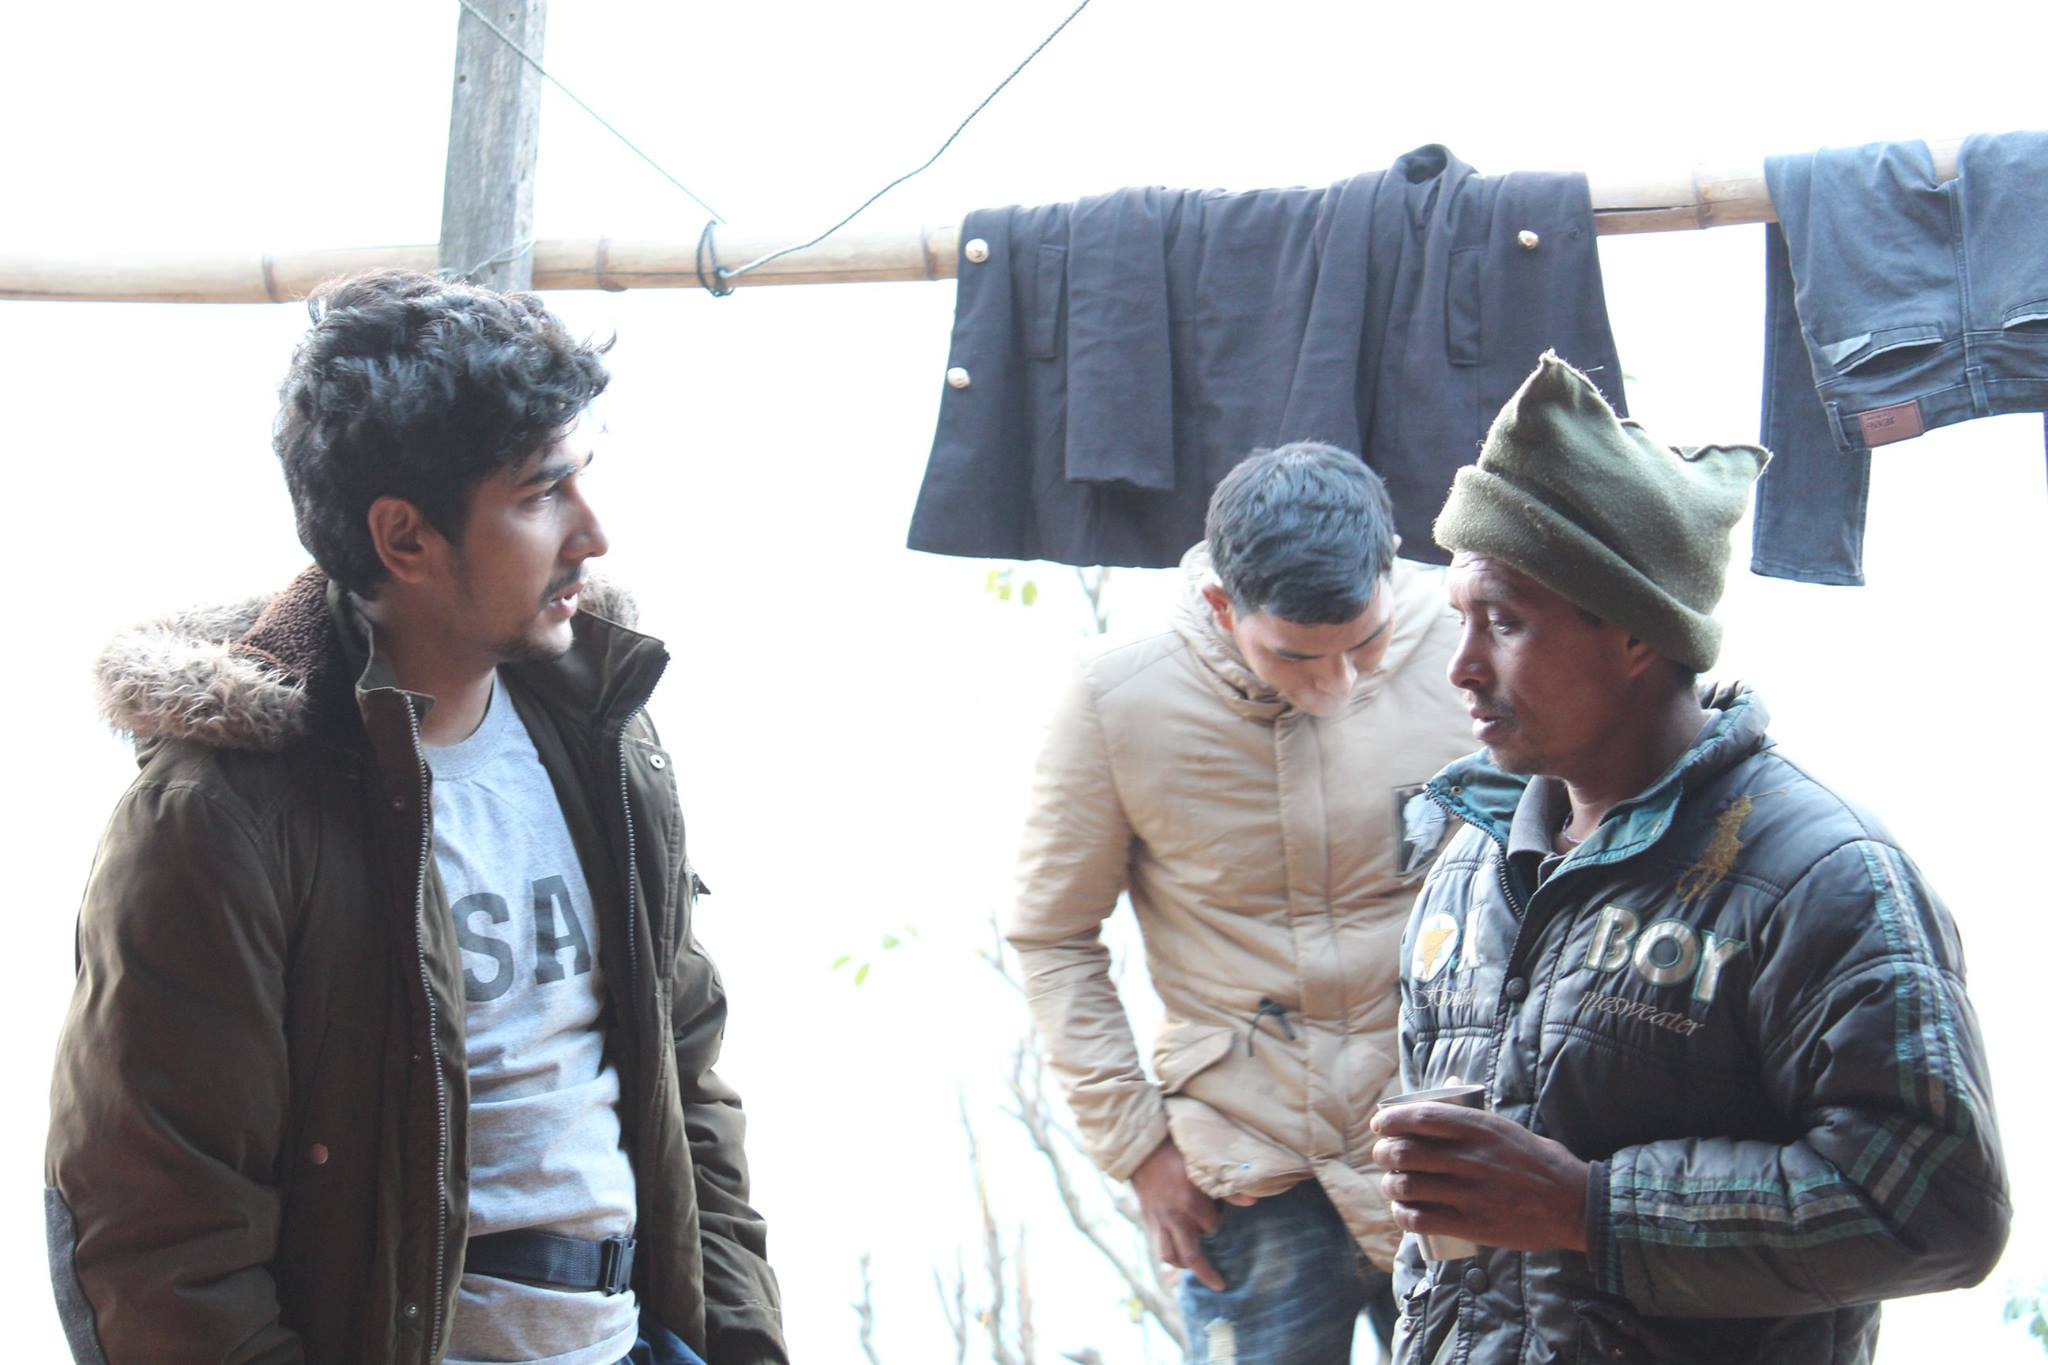 Collaborating with the villagers